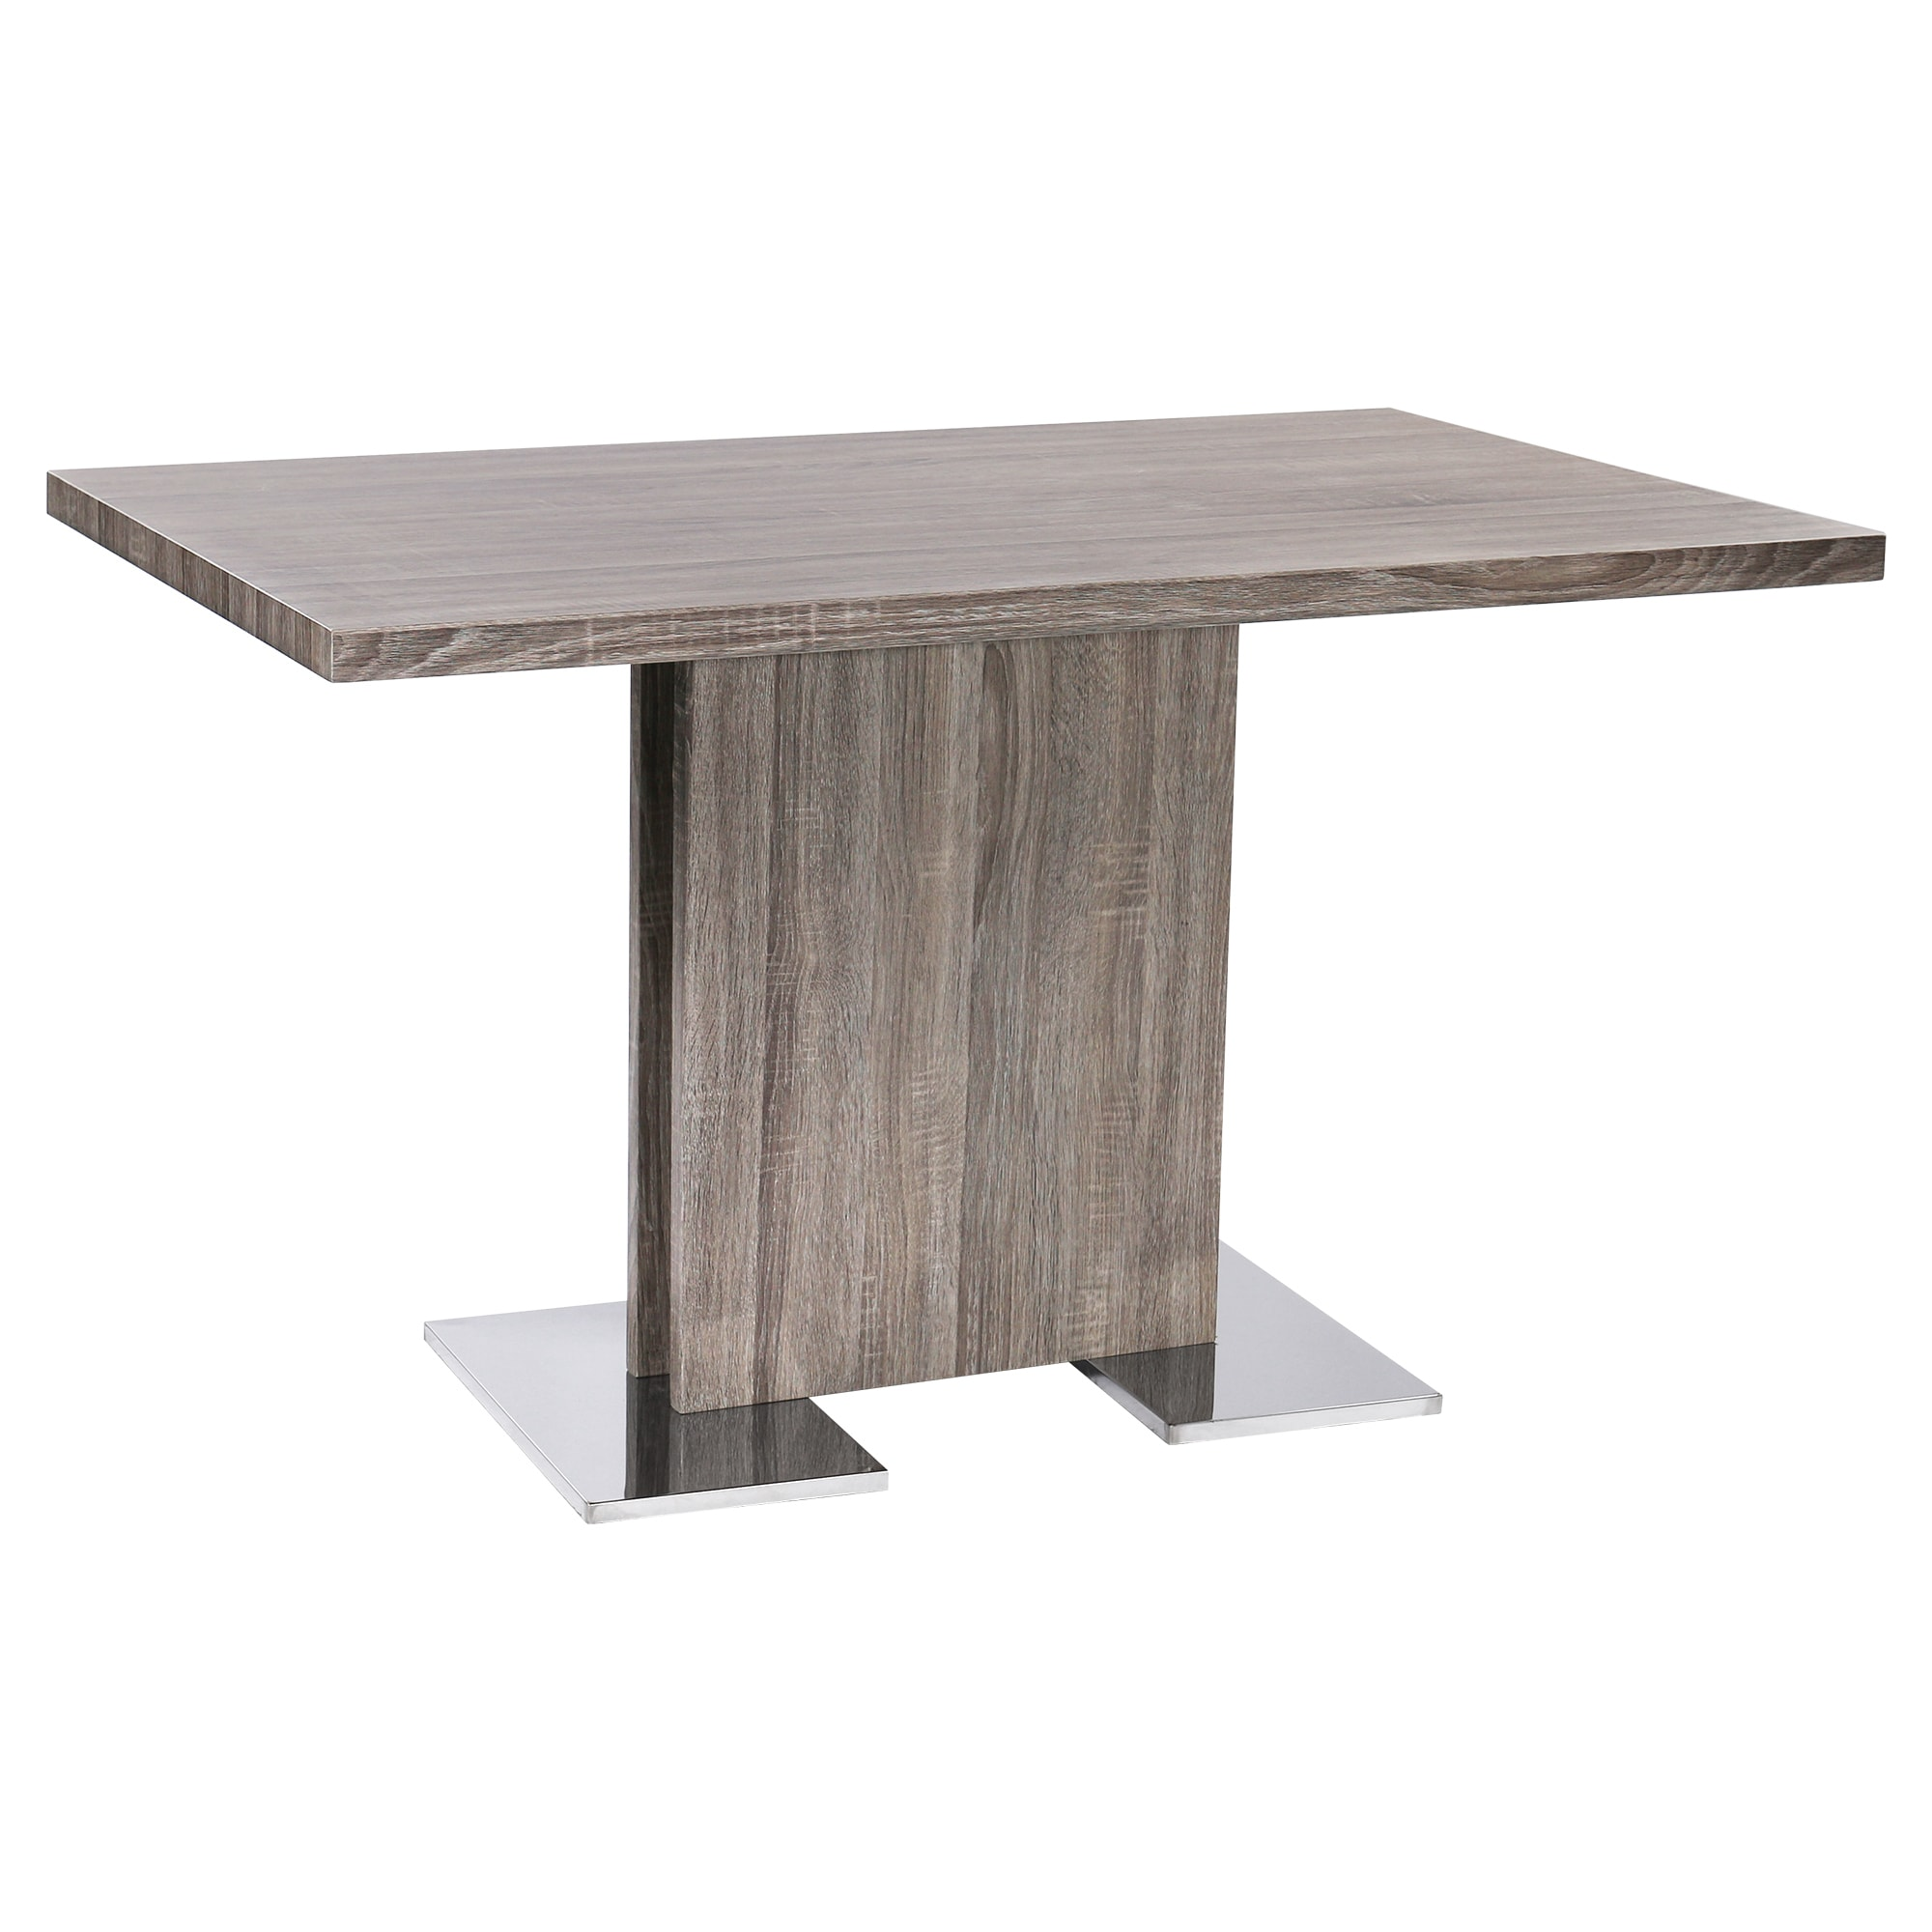 Armen Living Zenith Grey Walnut Dining Table With Brushed Stainless Steel Base On Free Shipping Today 16435197